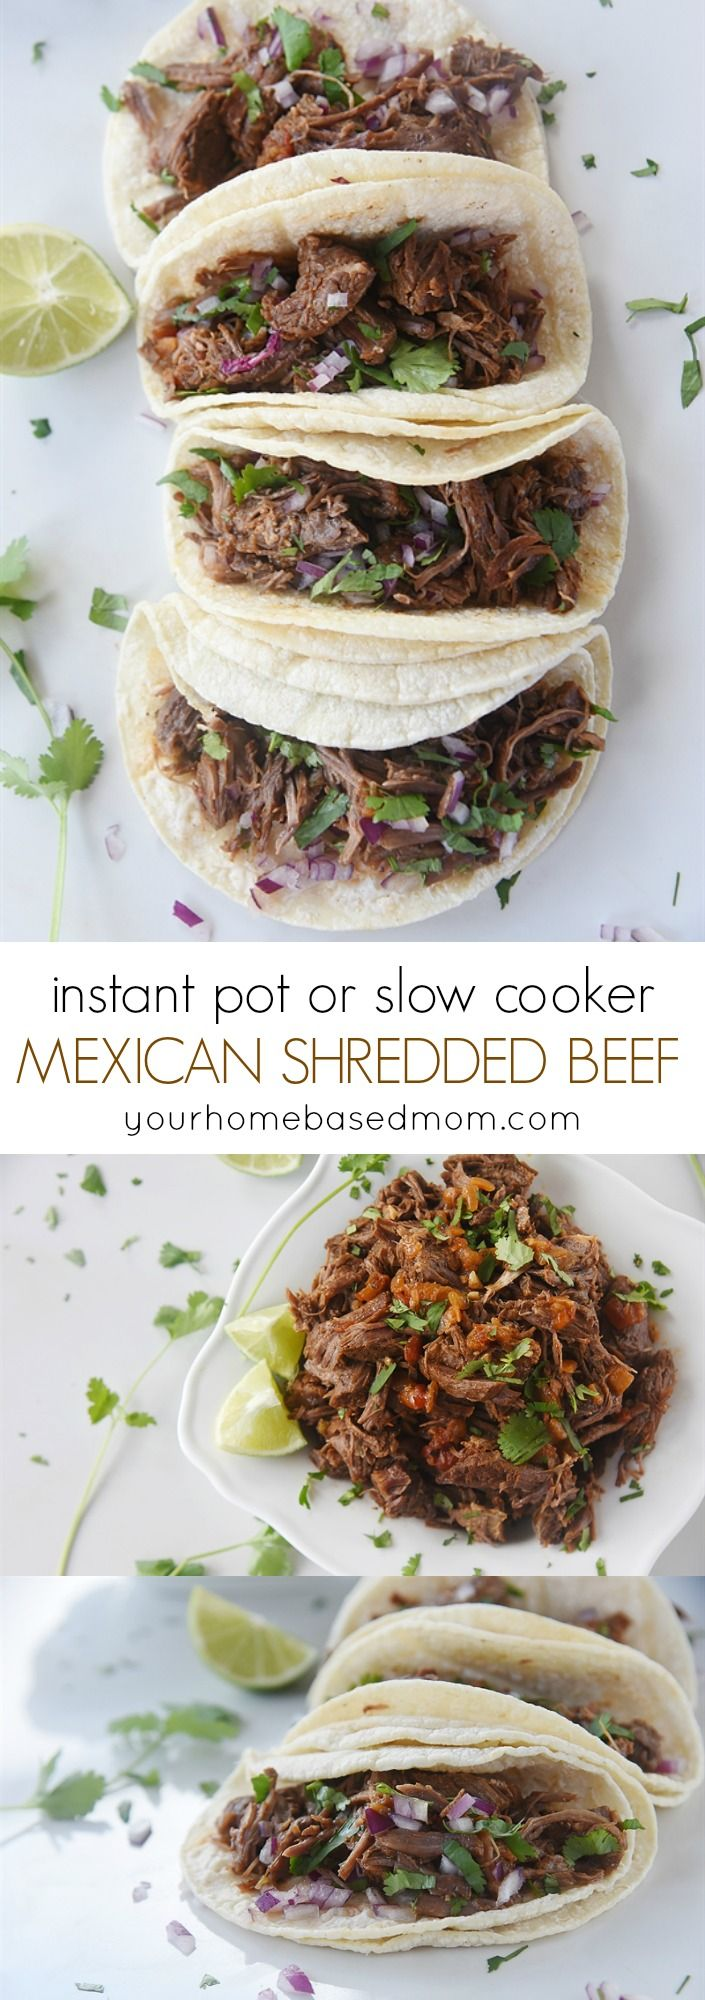 Photo of Instant Pot or Slow Cooker Mexican Beef